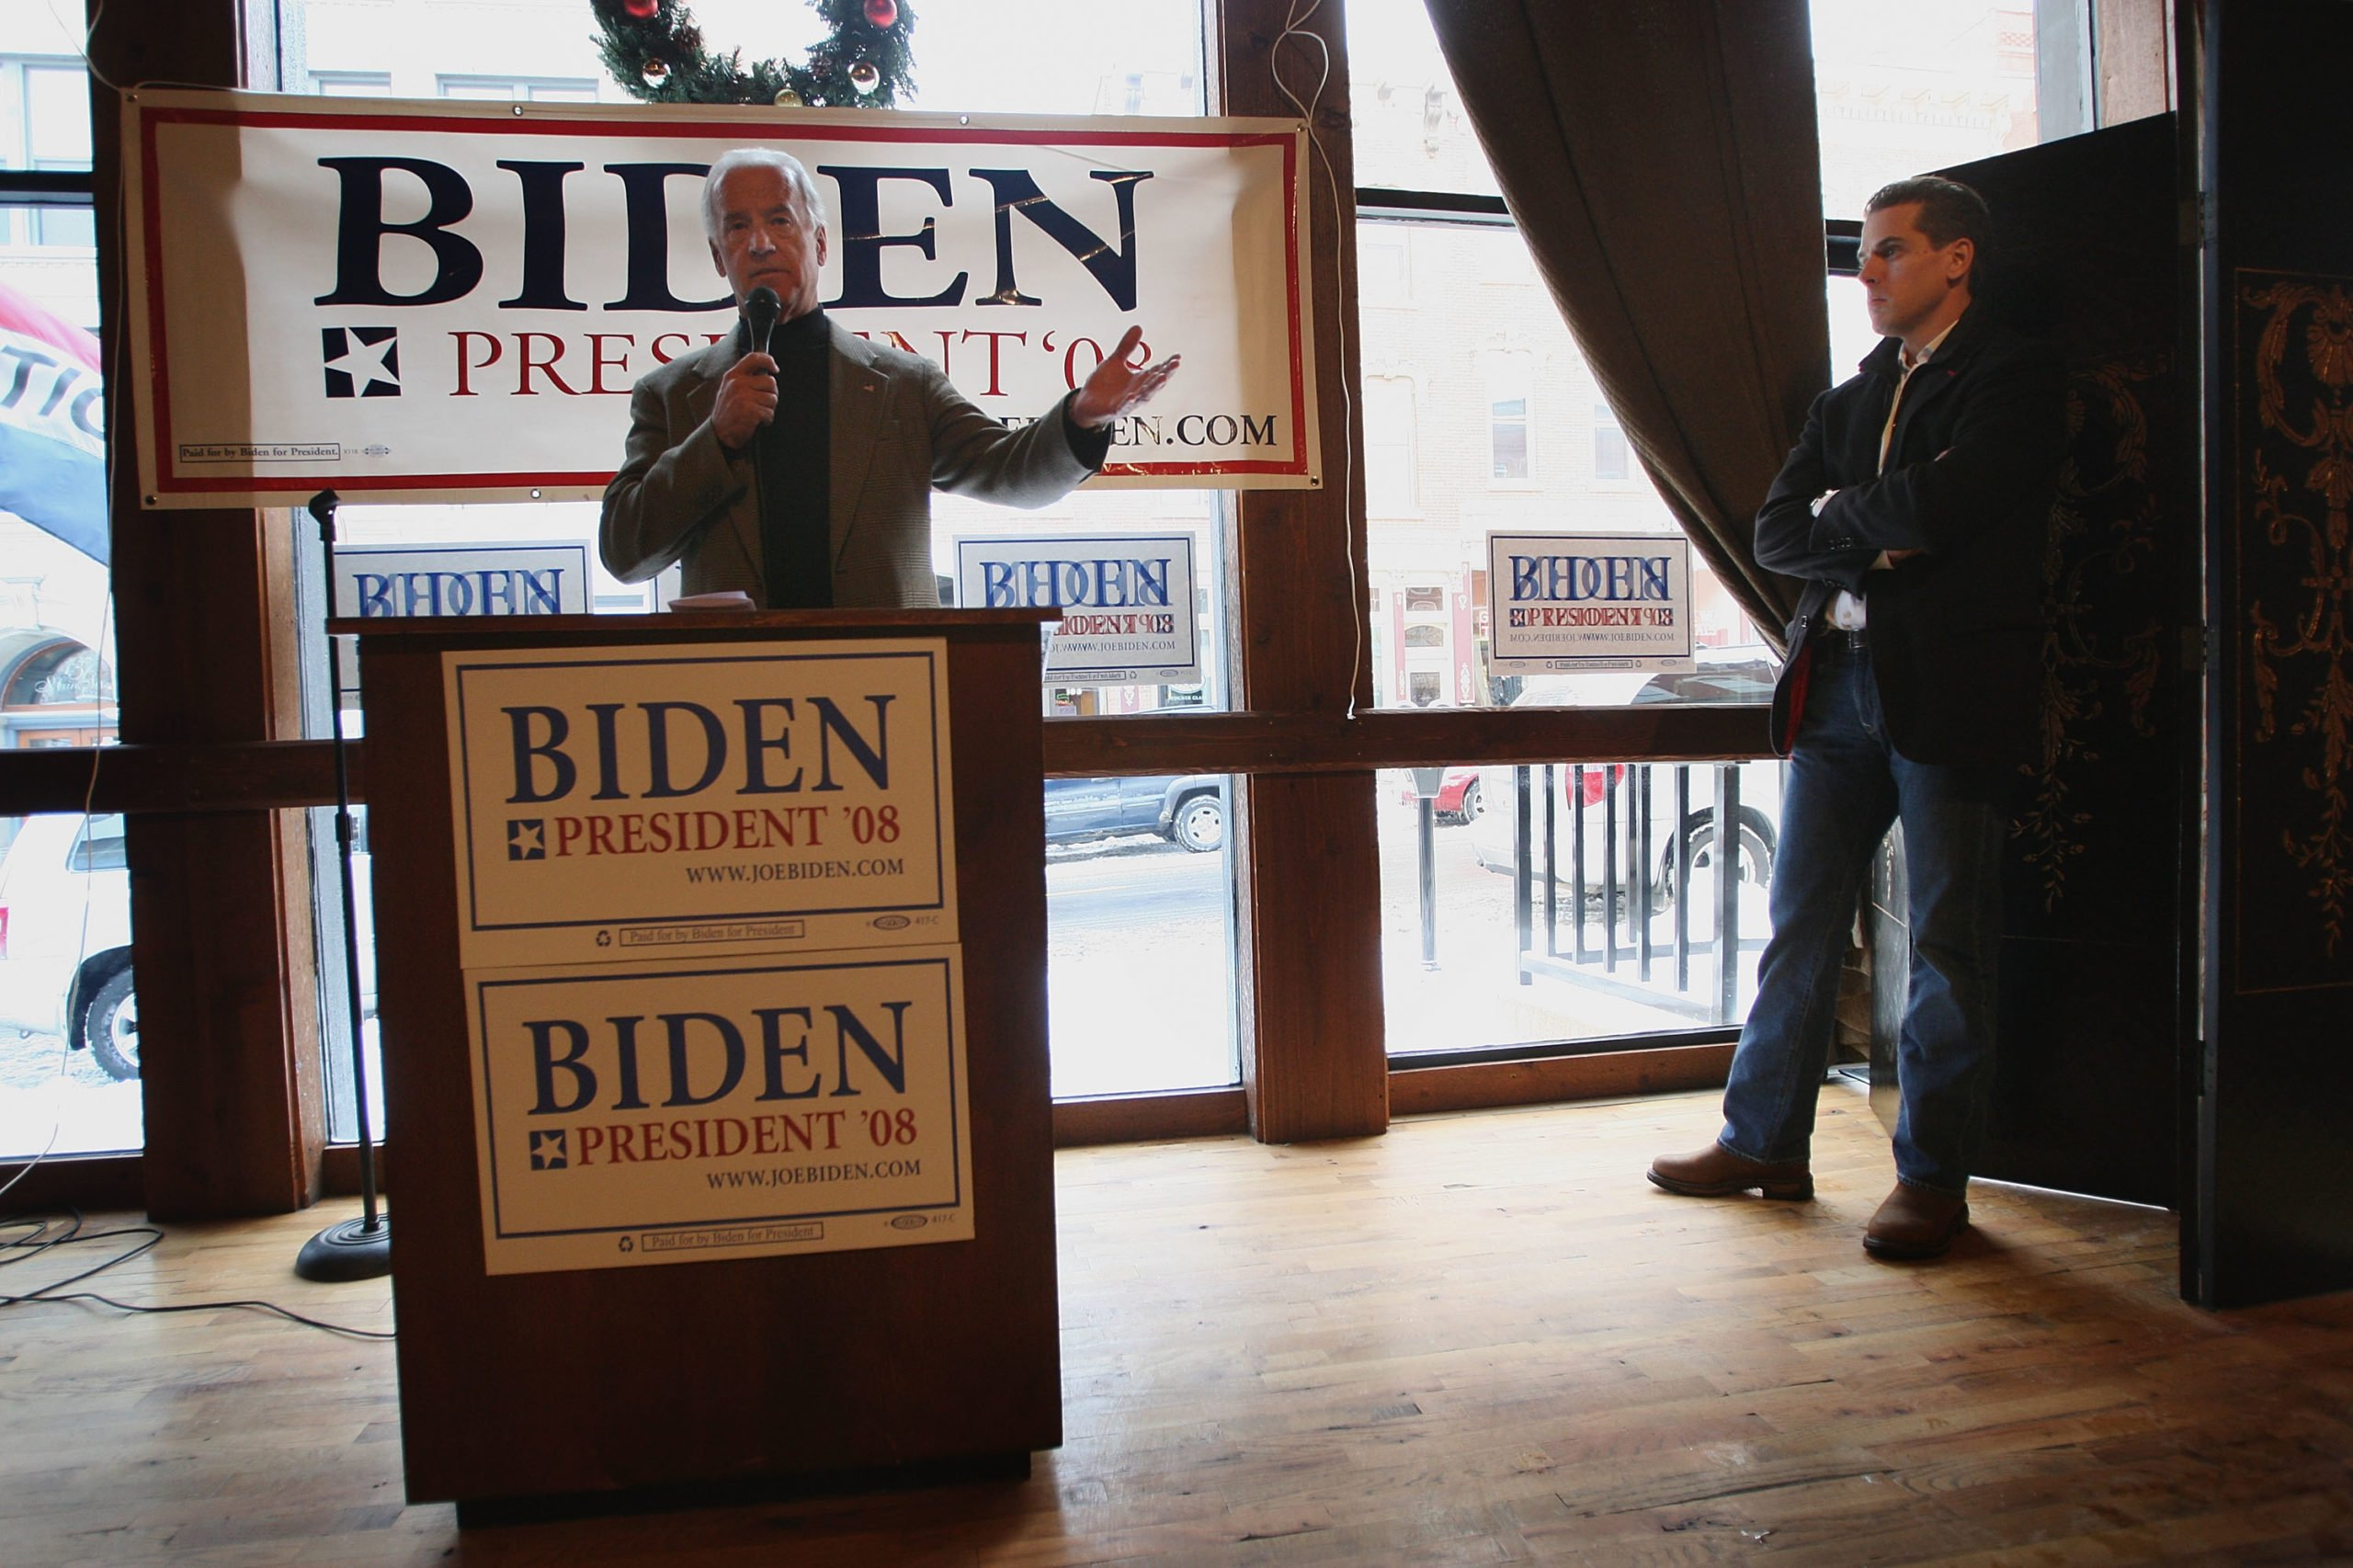 Joe Biden fields questions as his son Hunter Biden looks on at a campaign stop on Dec. 9 in Iowa. (Scott Olson/Getty Images)